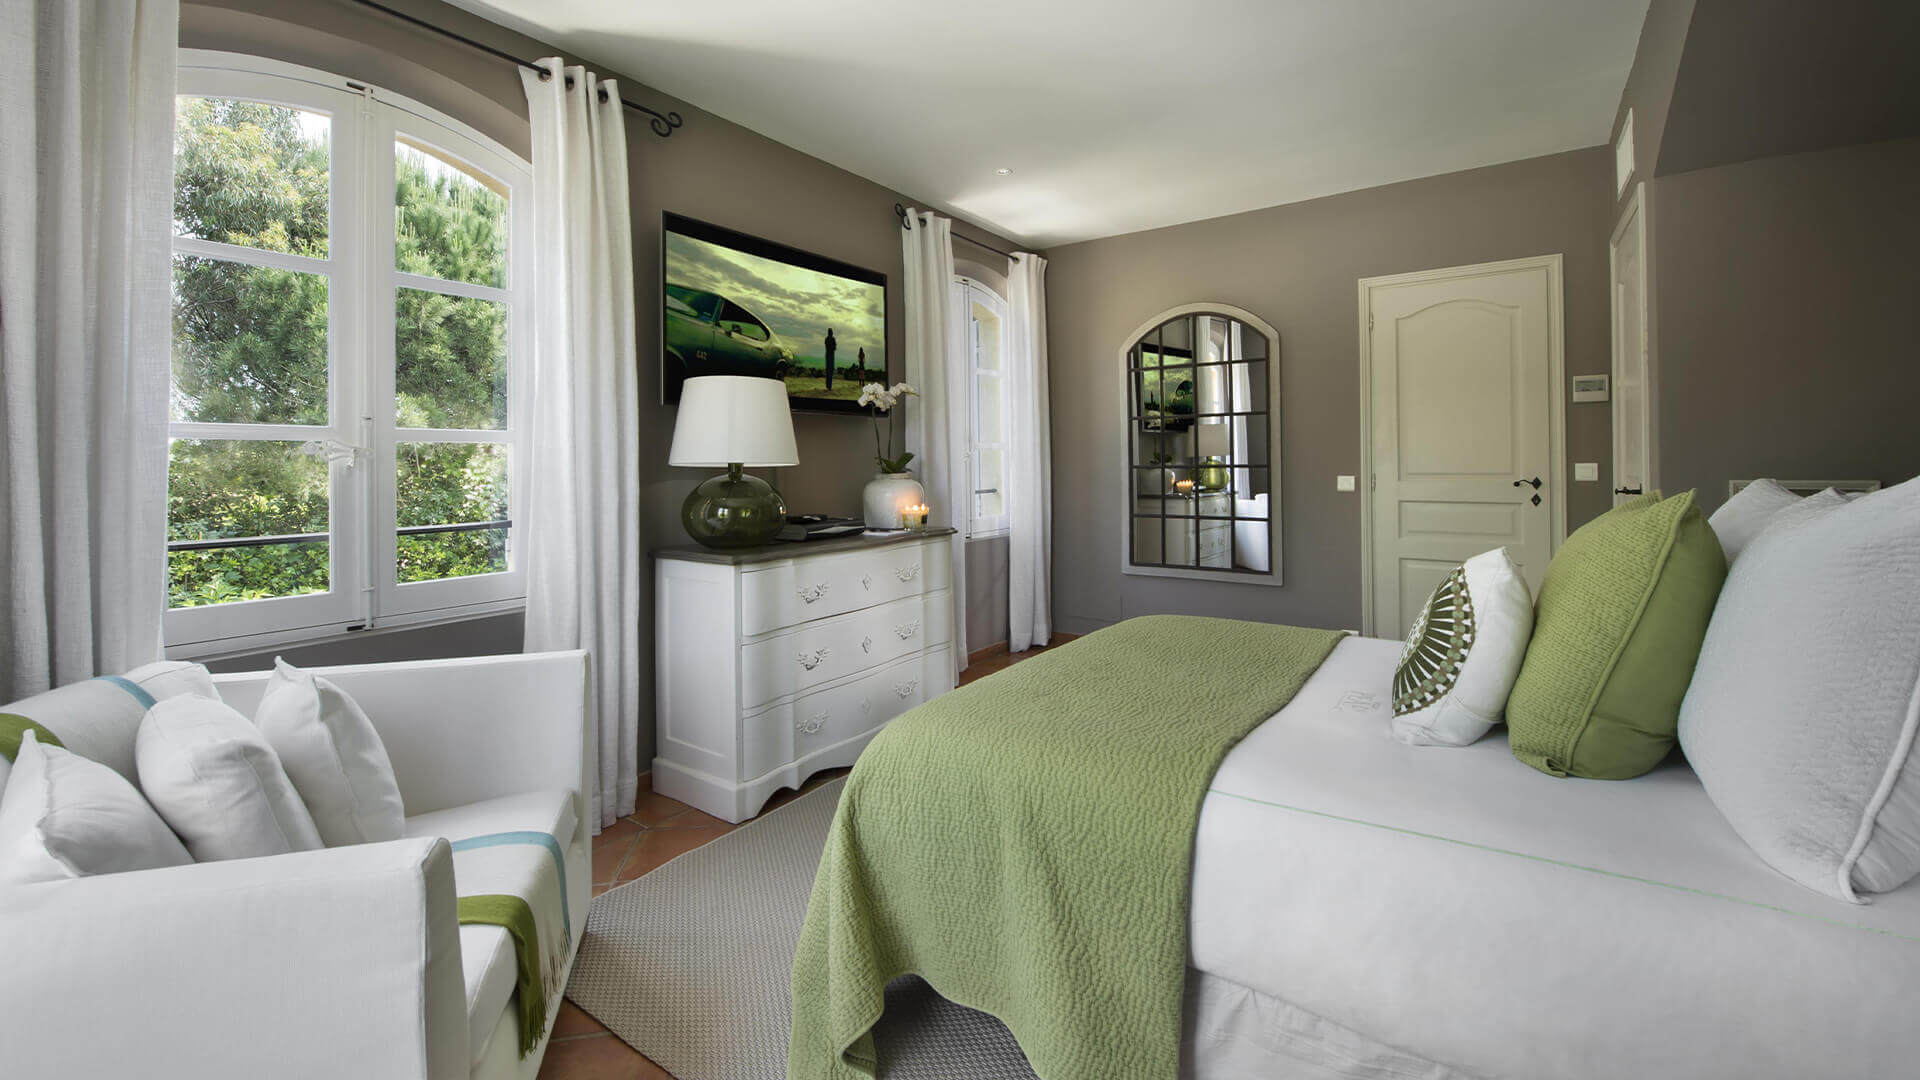 Saint Tropez Villa green bedroom with view of garden